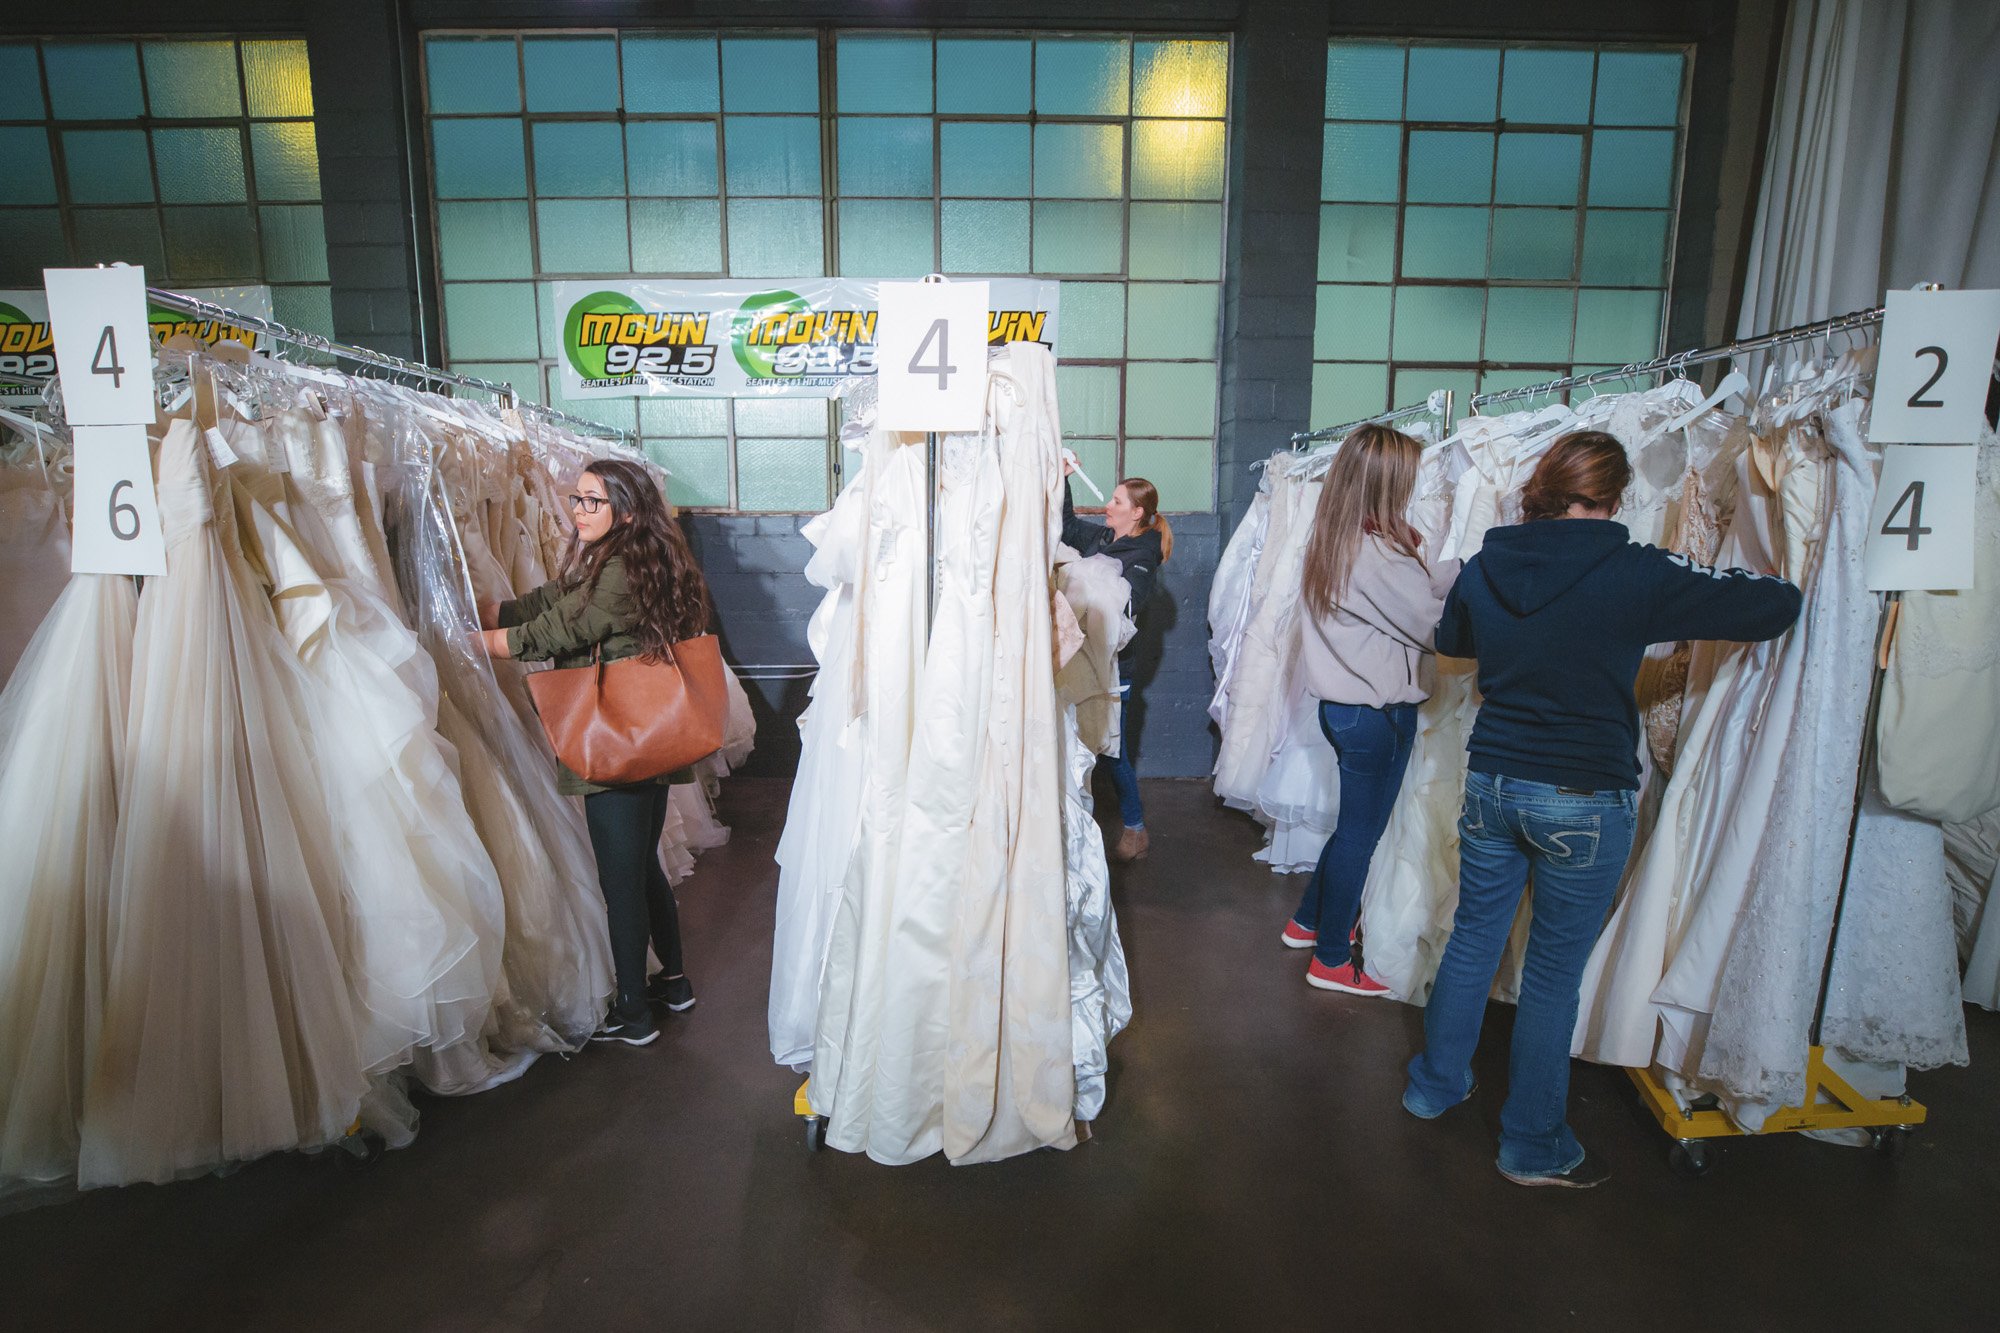 "We went from the Snopocalypse to the Bridepocalypse! Brides for a Cause hosted their sixth annual Dress Dash today Saturday, February 16 at Westlake Center. This discount wedding dress event featured more than 500 wedding dresses all priced at $150. This event is designed to ""clear the racks"" but keep in mind that Brides for a Cause has stores in Portland, Tacoma and Seattle which has all inventory including designer and new arrivals. (Images: Sunita Martini / Seattle Refined)."